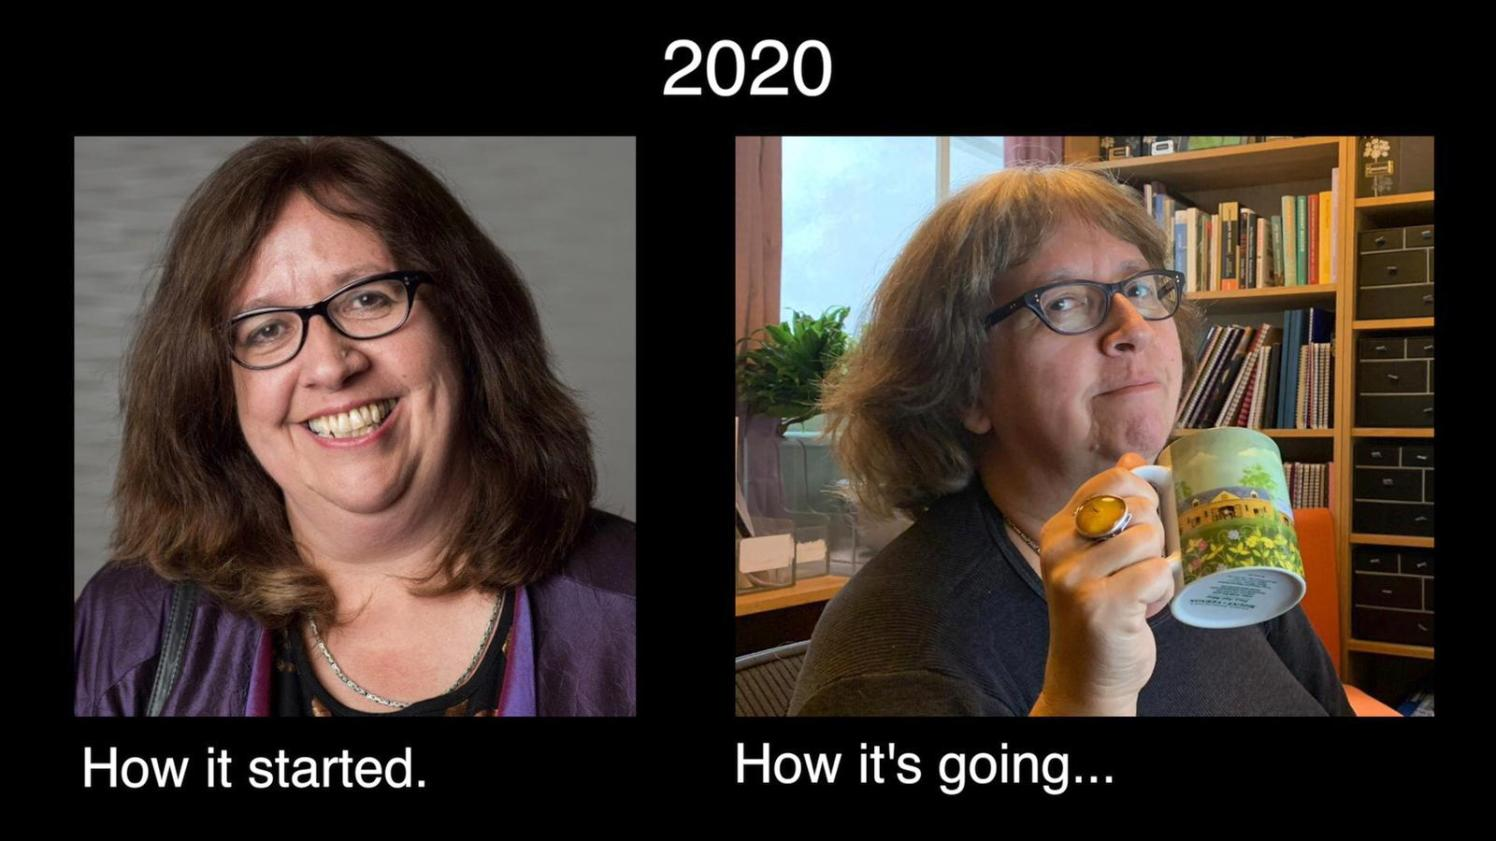 Bridget before and after image